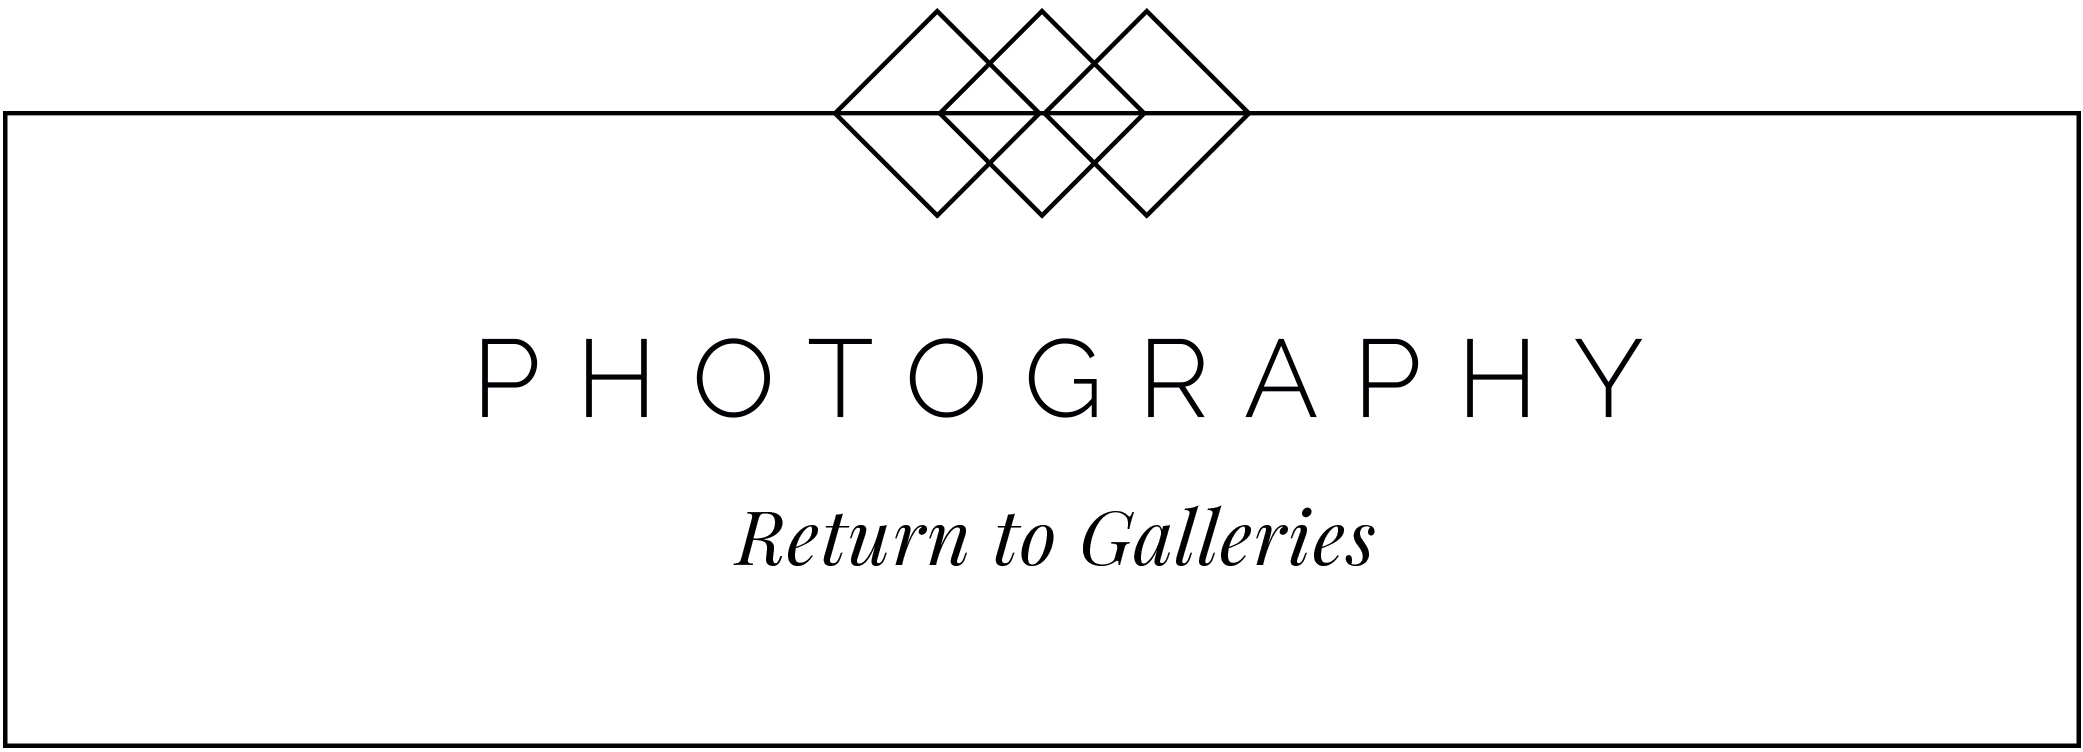 photographygallerybutton_return.jpg